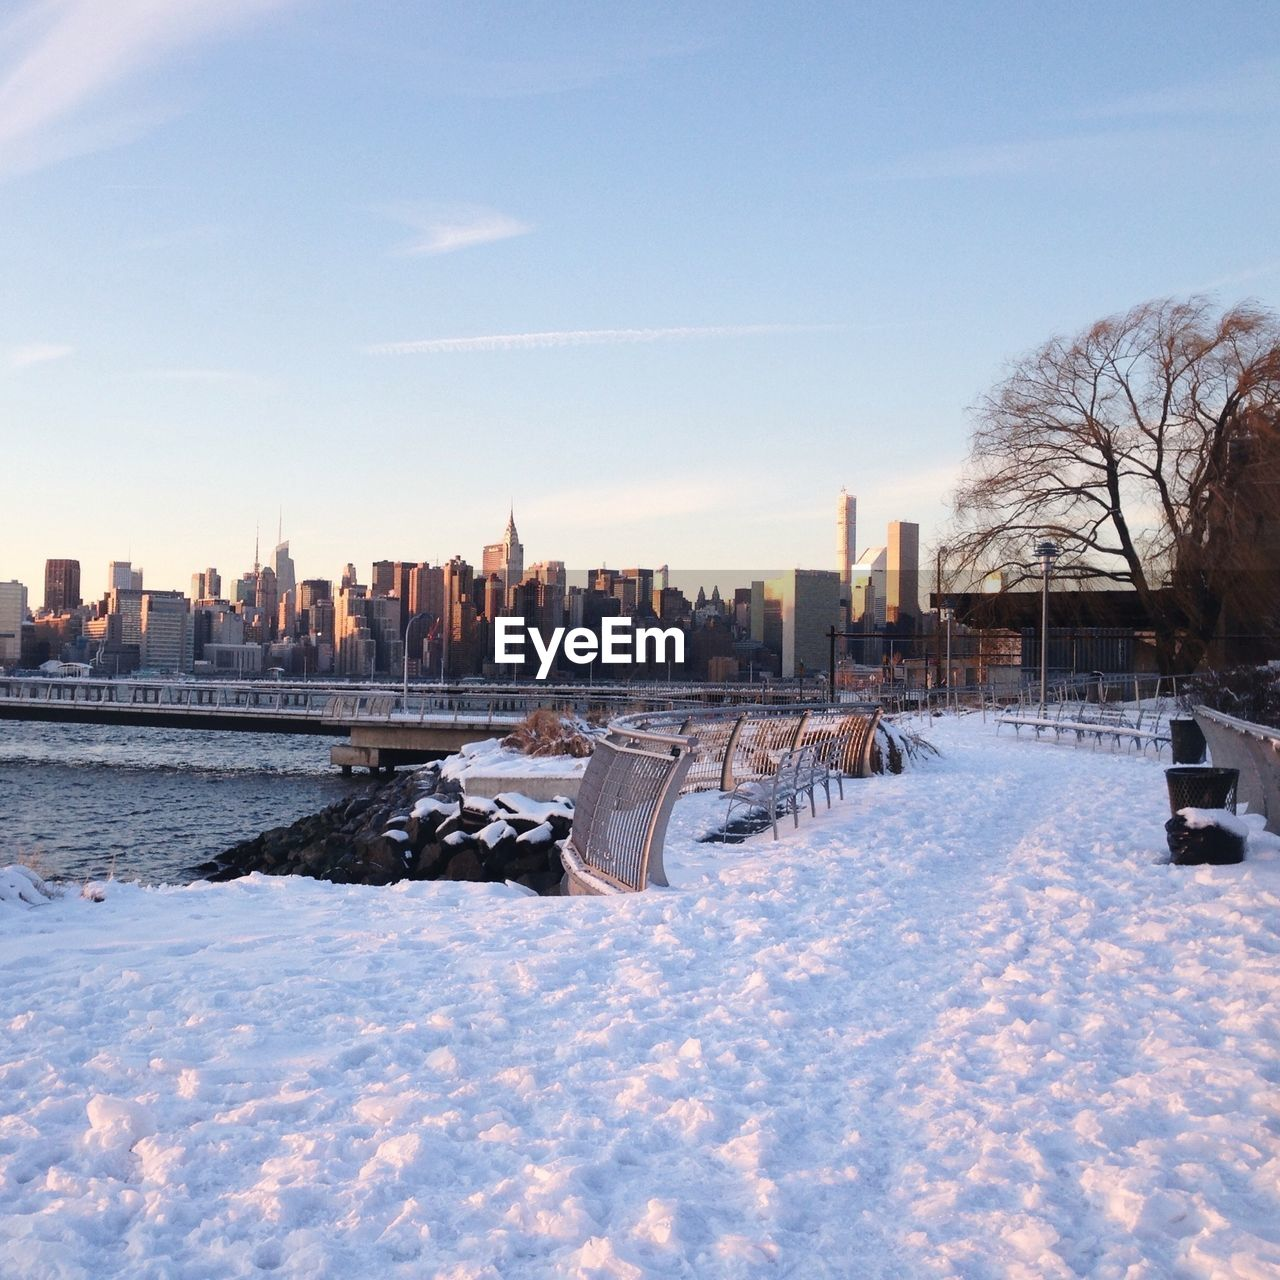 River Bank In Snow And Waterfront In Background